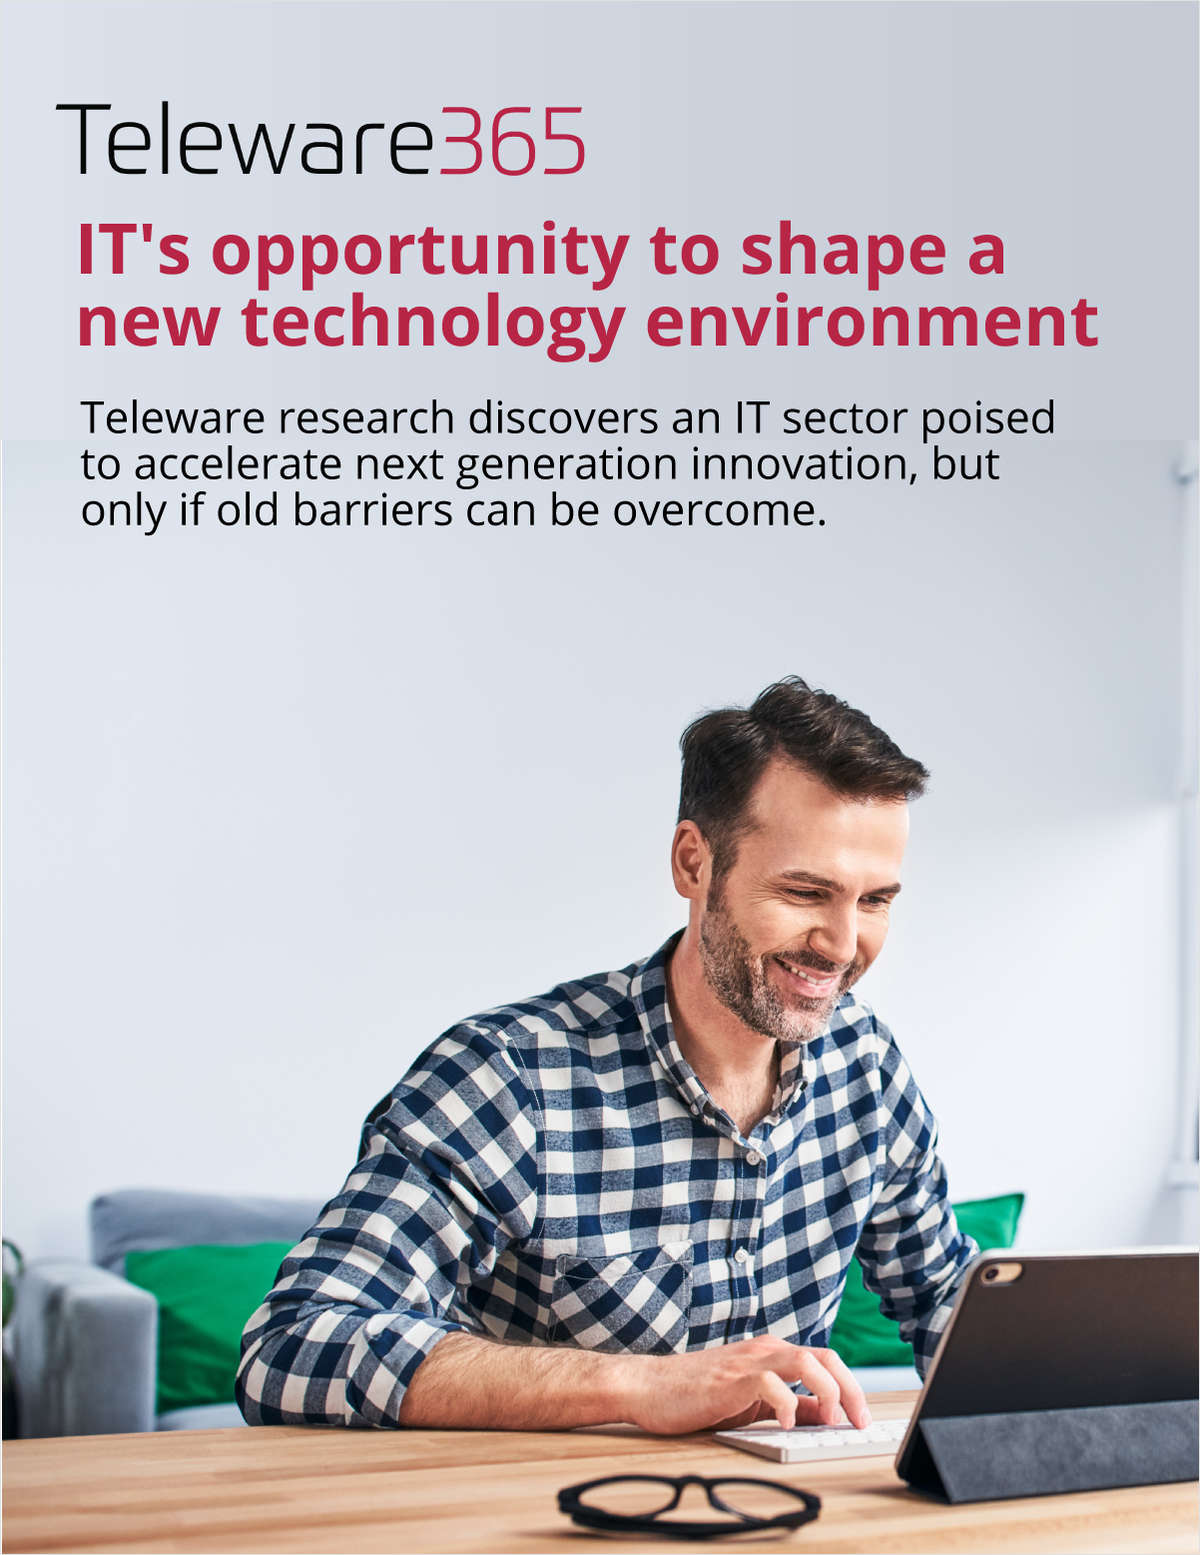 IT's opportunity to shape a new technology environment